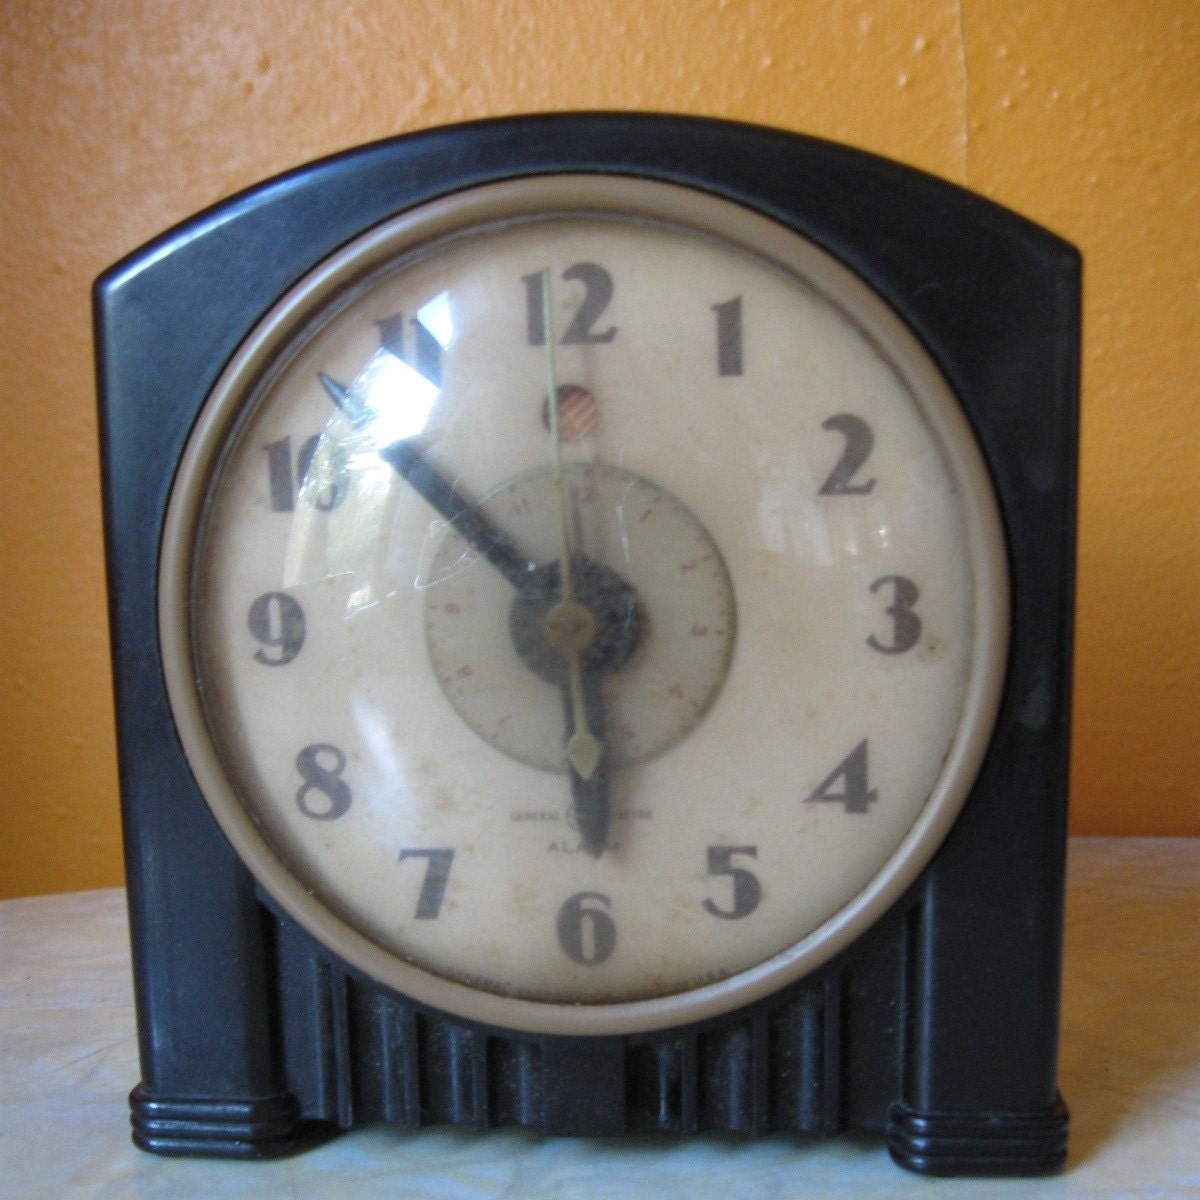 Art deco bakelite alarm clock vintage general by retro2gogo Art deco alarm clocks